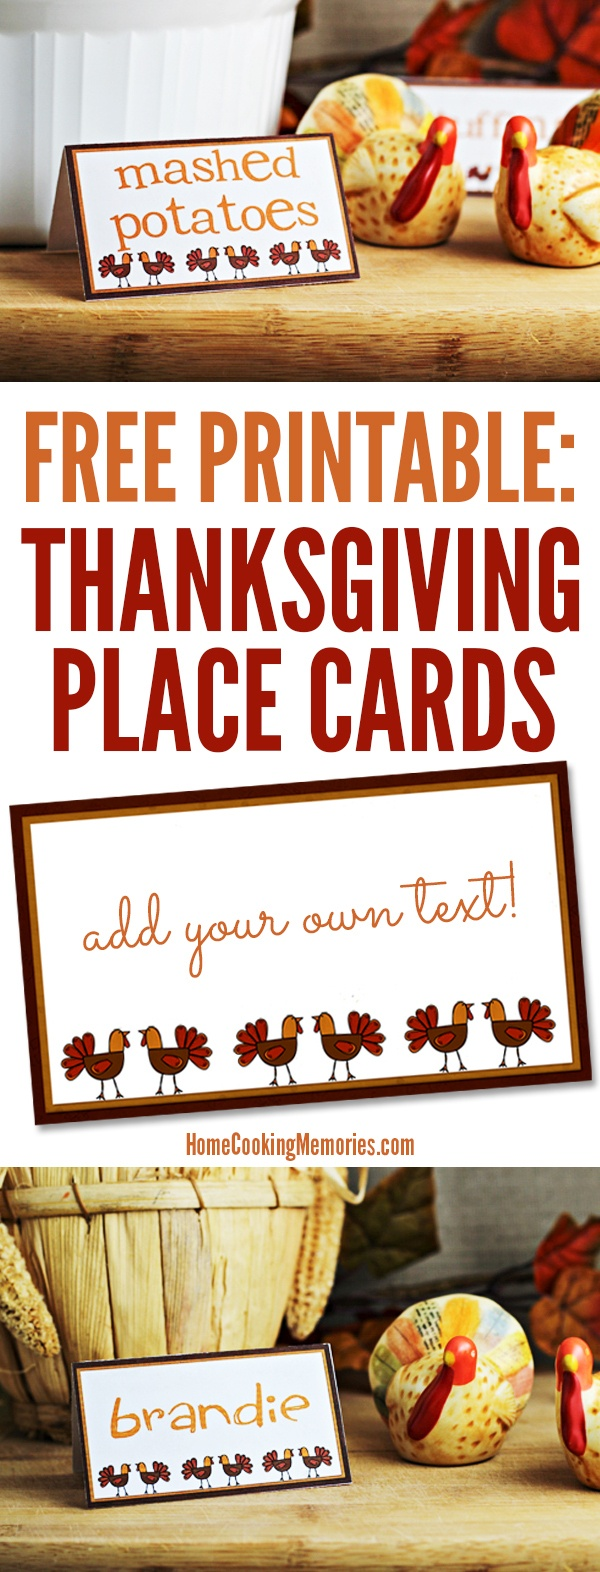 Free Printables: Thanksgiving Place Cards - Home Cooking Memories - Free Printable Personalized Thanksgiving Place Cards